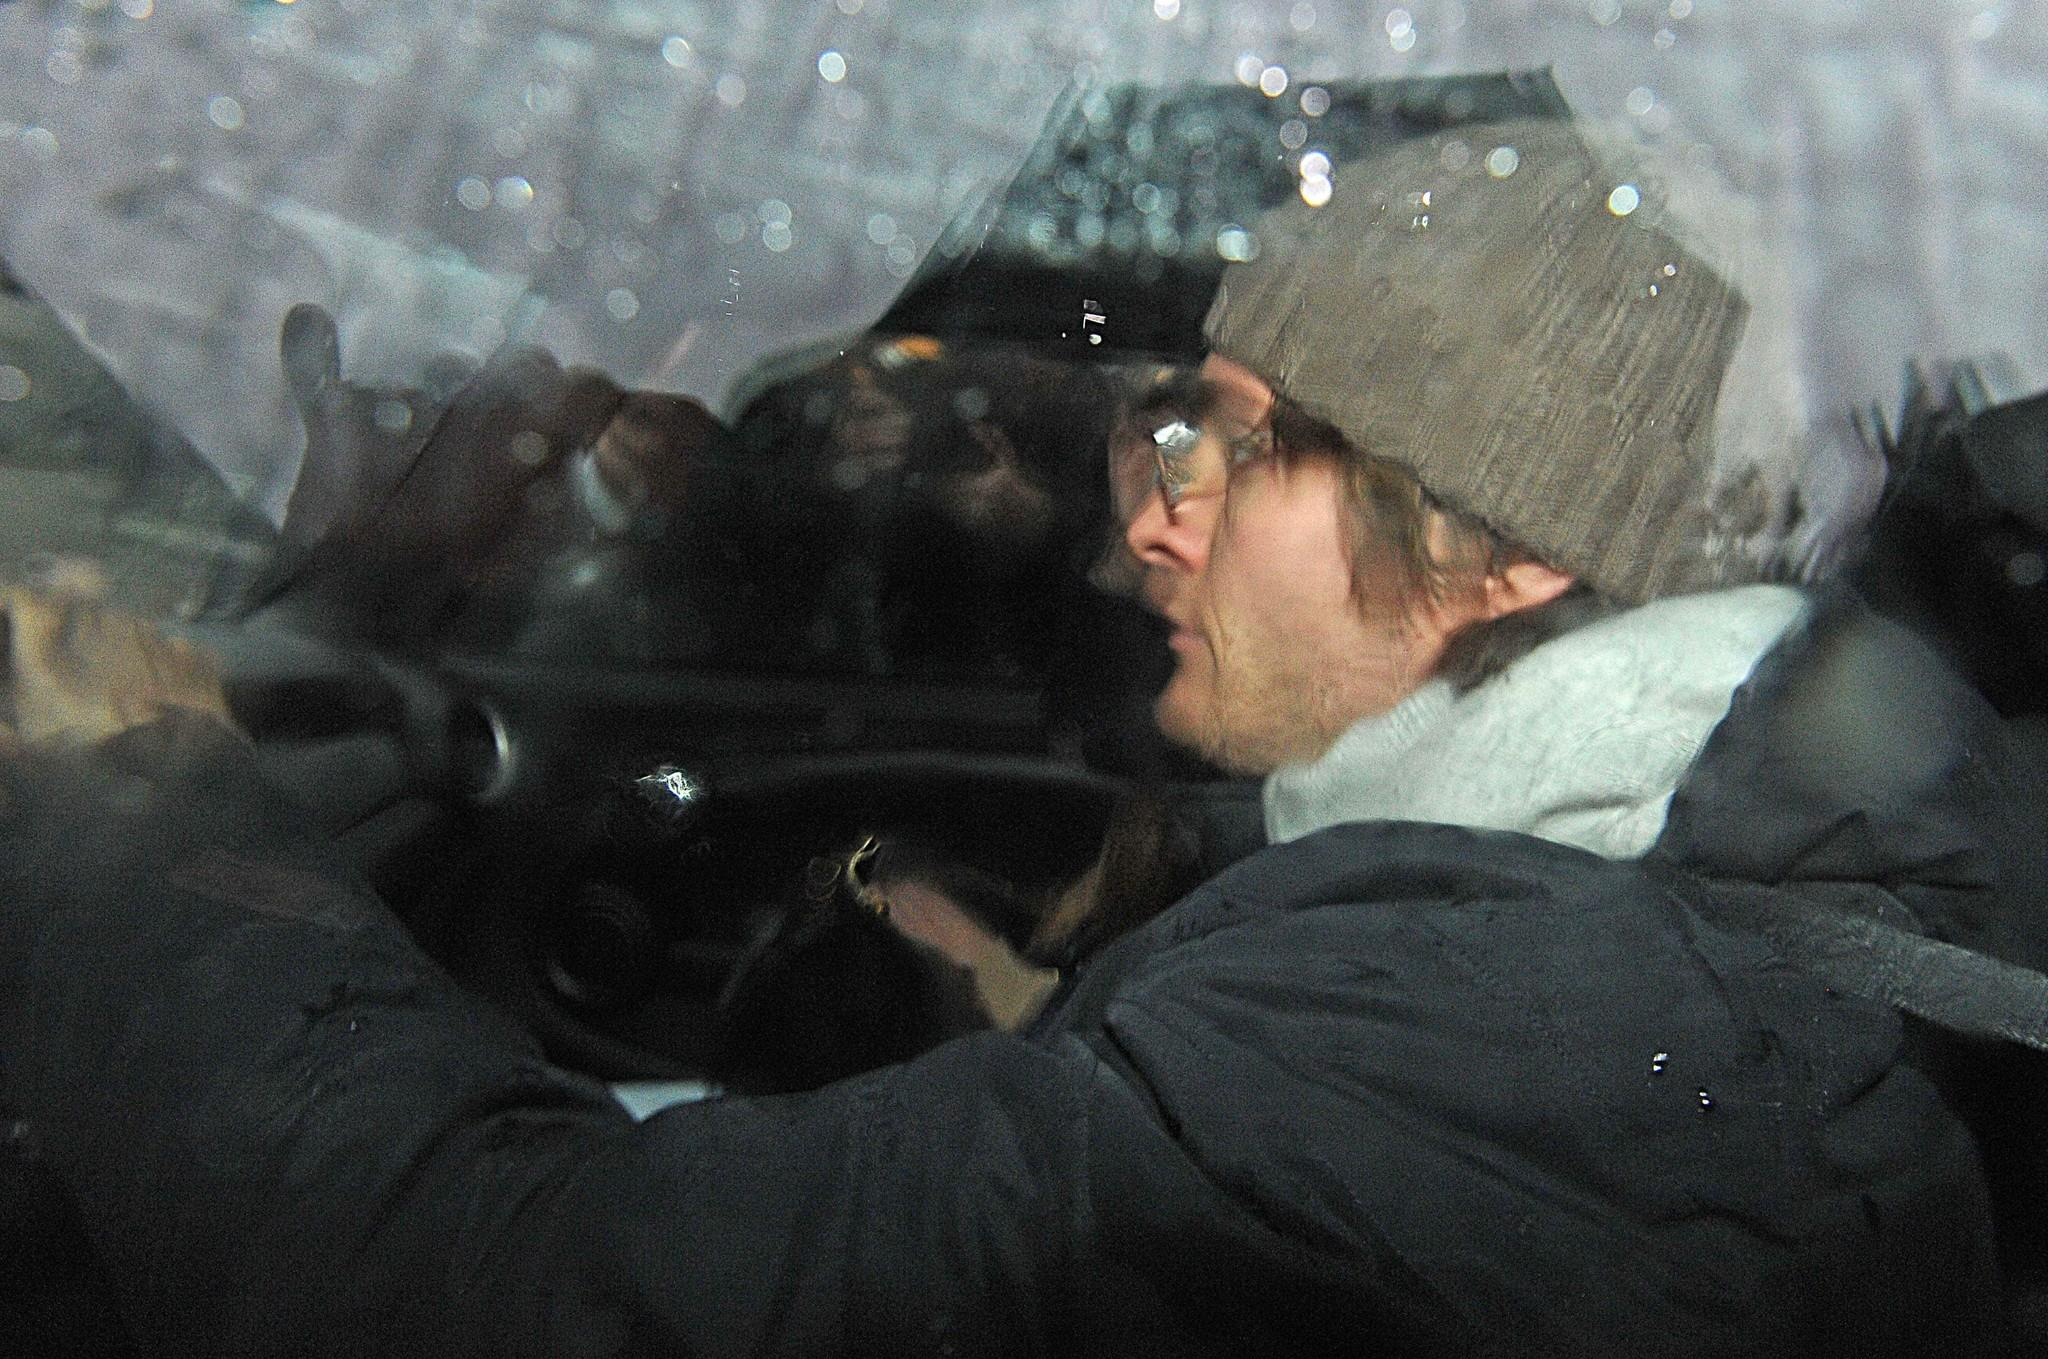 Amanda Knox's ex-boyfriend, Raffaele Sollecito, leaves police headquarters in the Italian city of Udine on Friday. A court in Florence ordered Sollecito to turn in his passport.